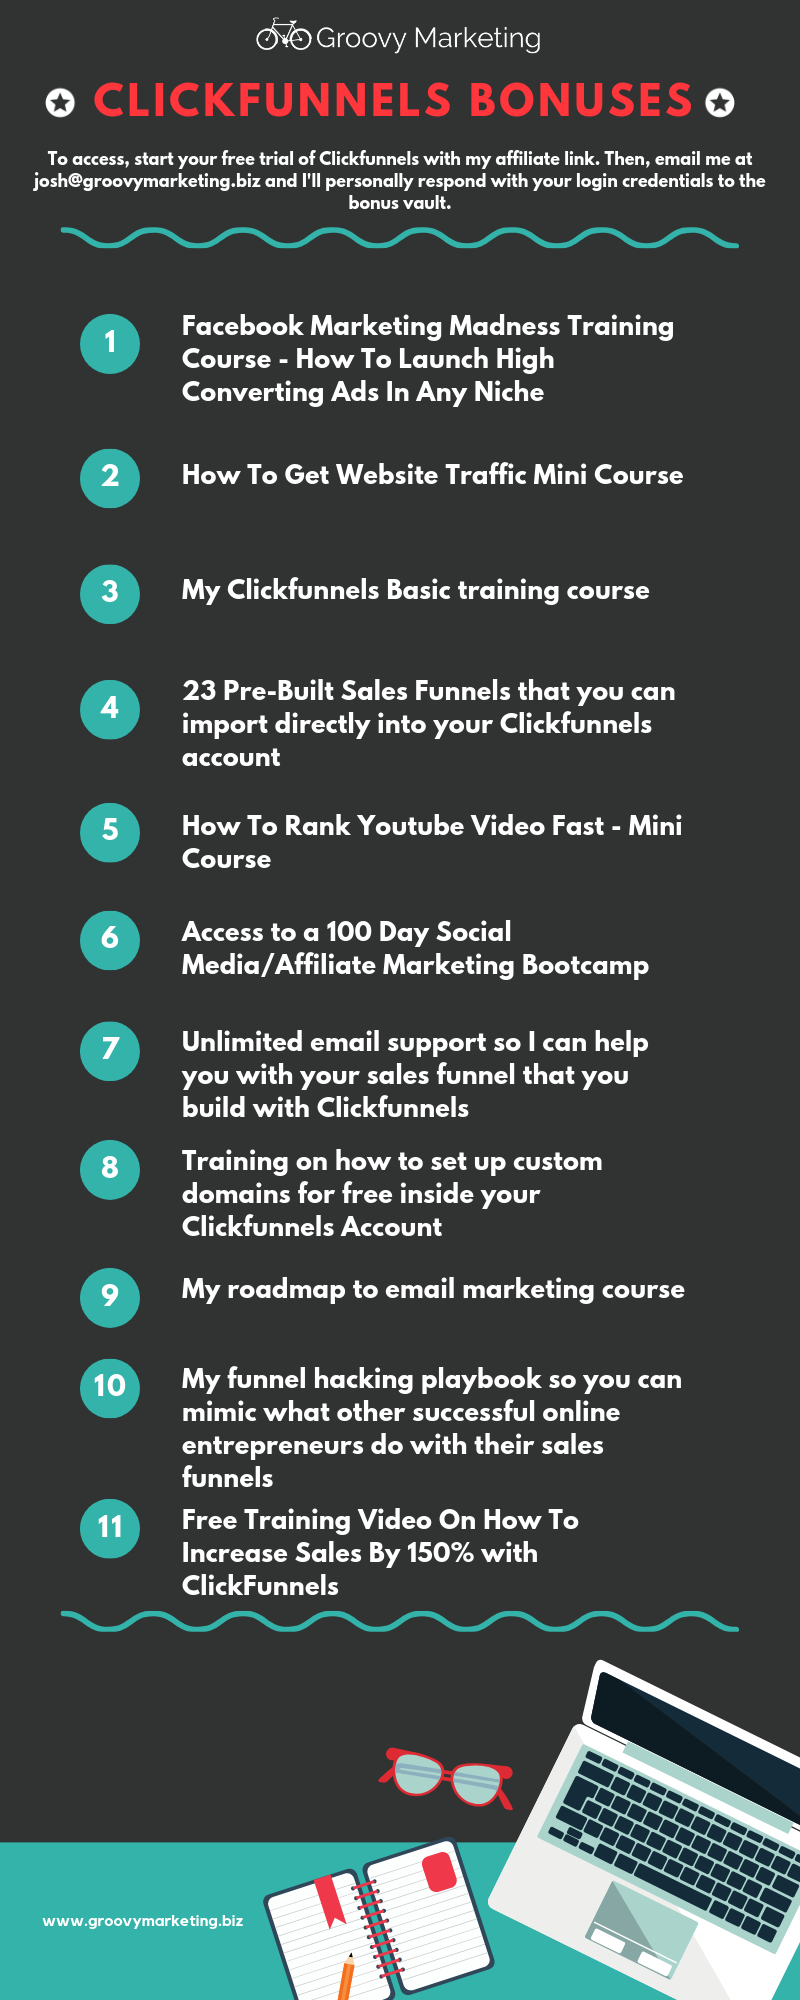 Clickfunnels-pricing-bonuses-infographic.png